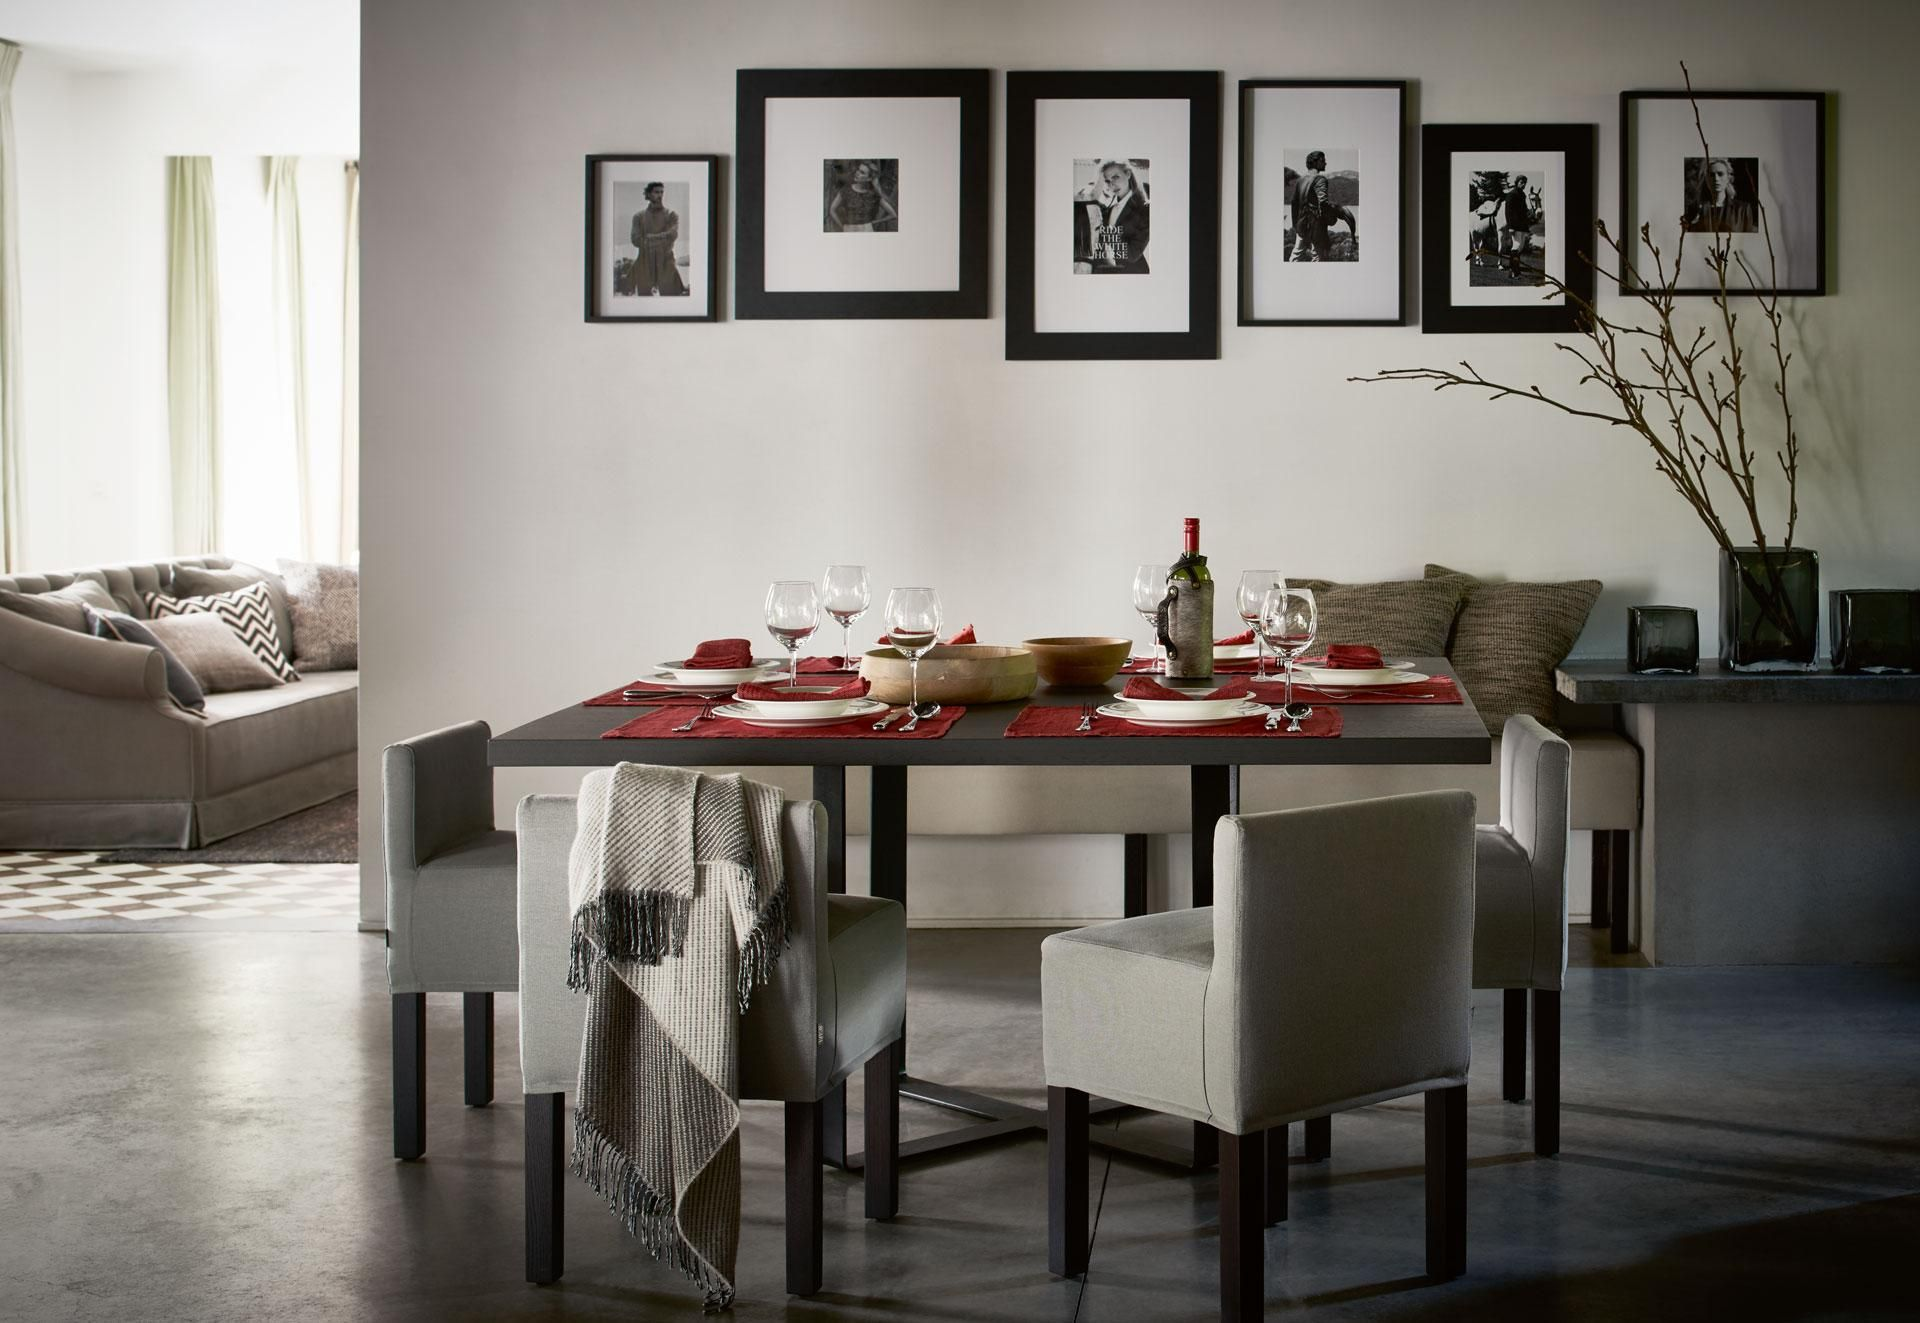 Totaalconcept freja home styling interieur pinterest home